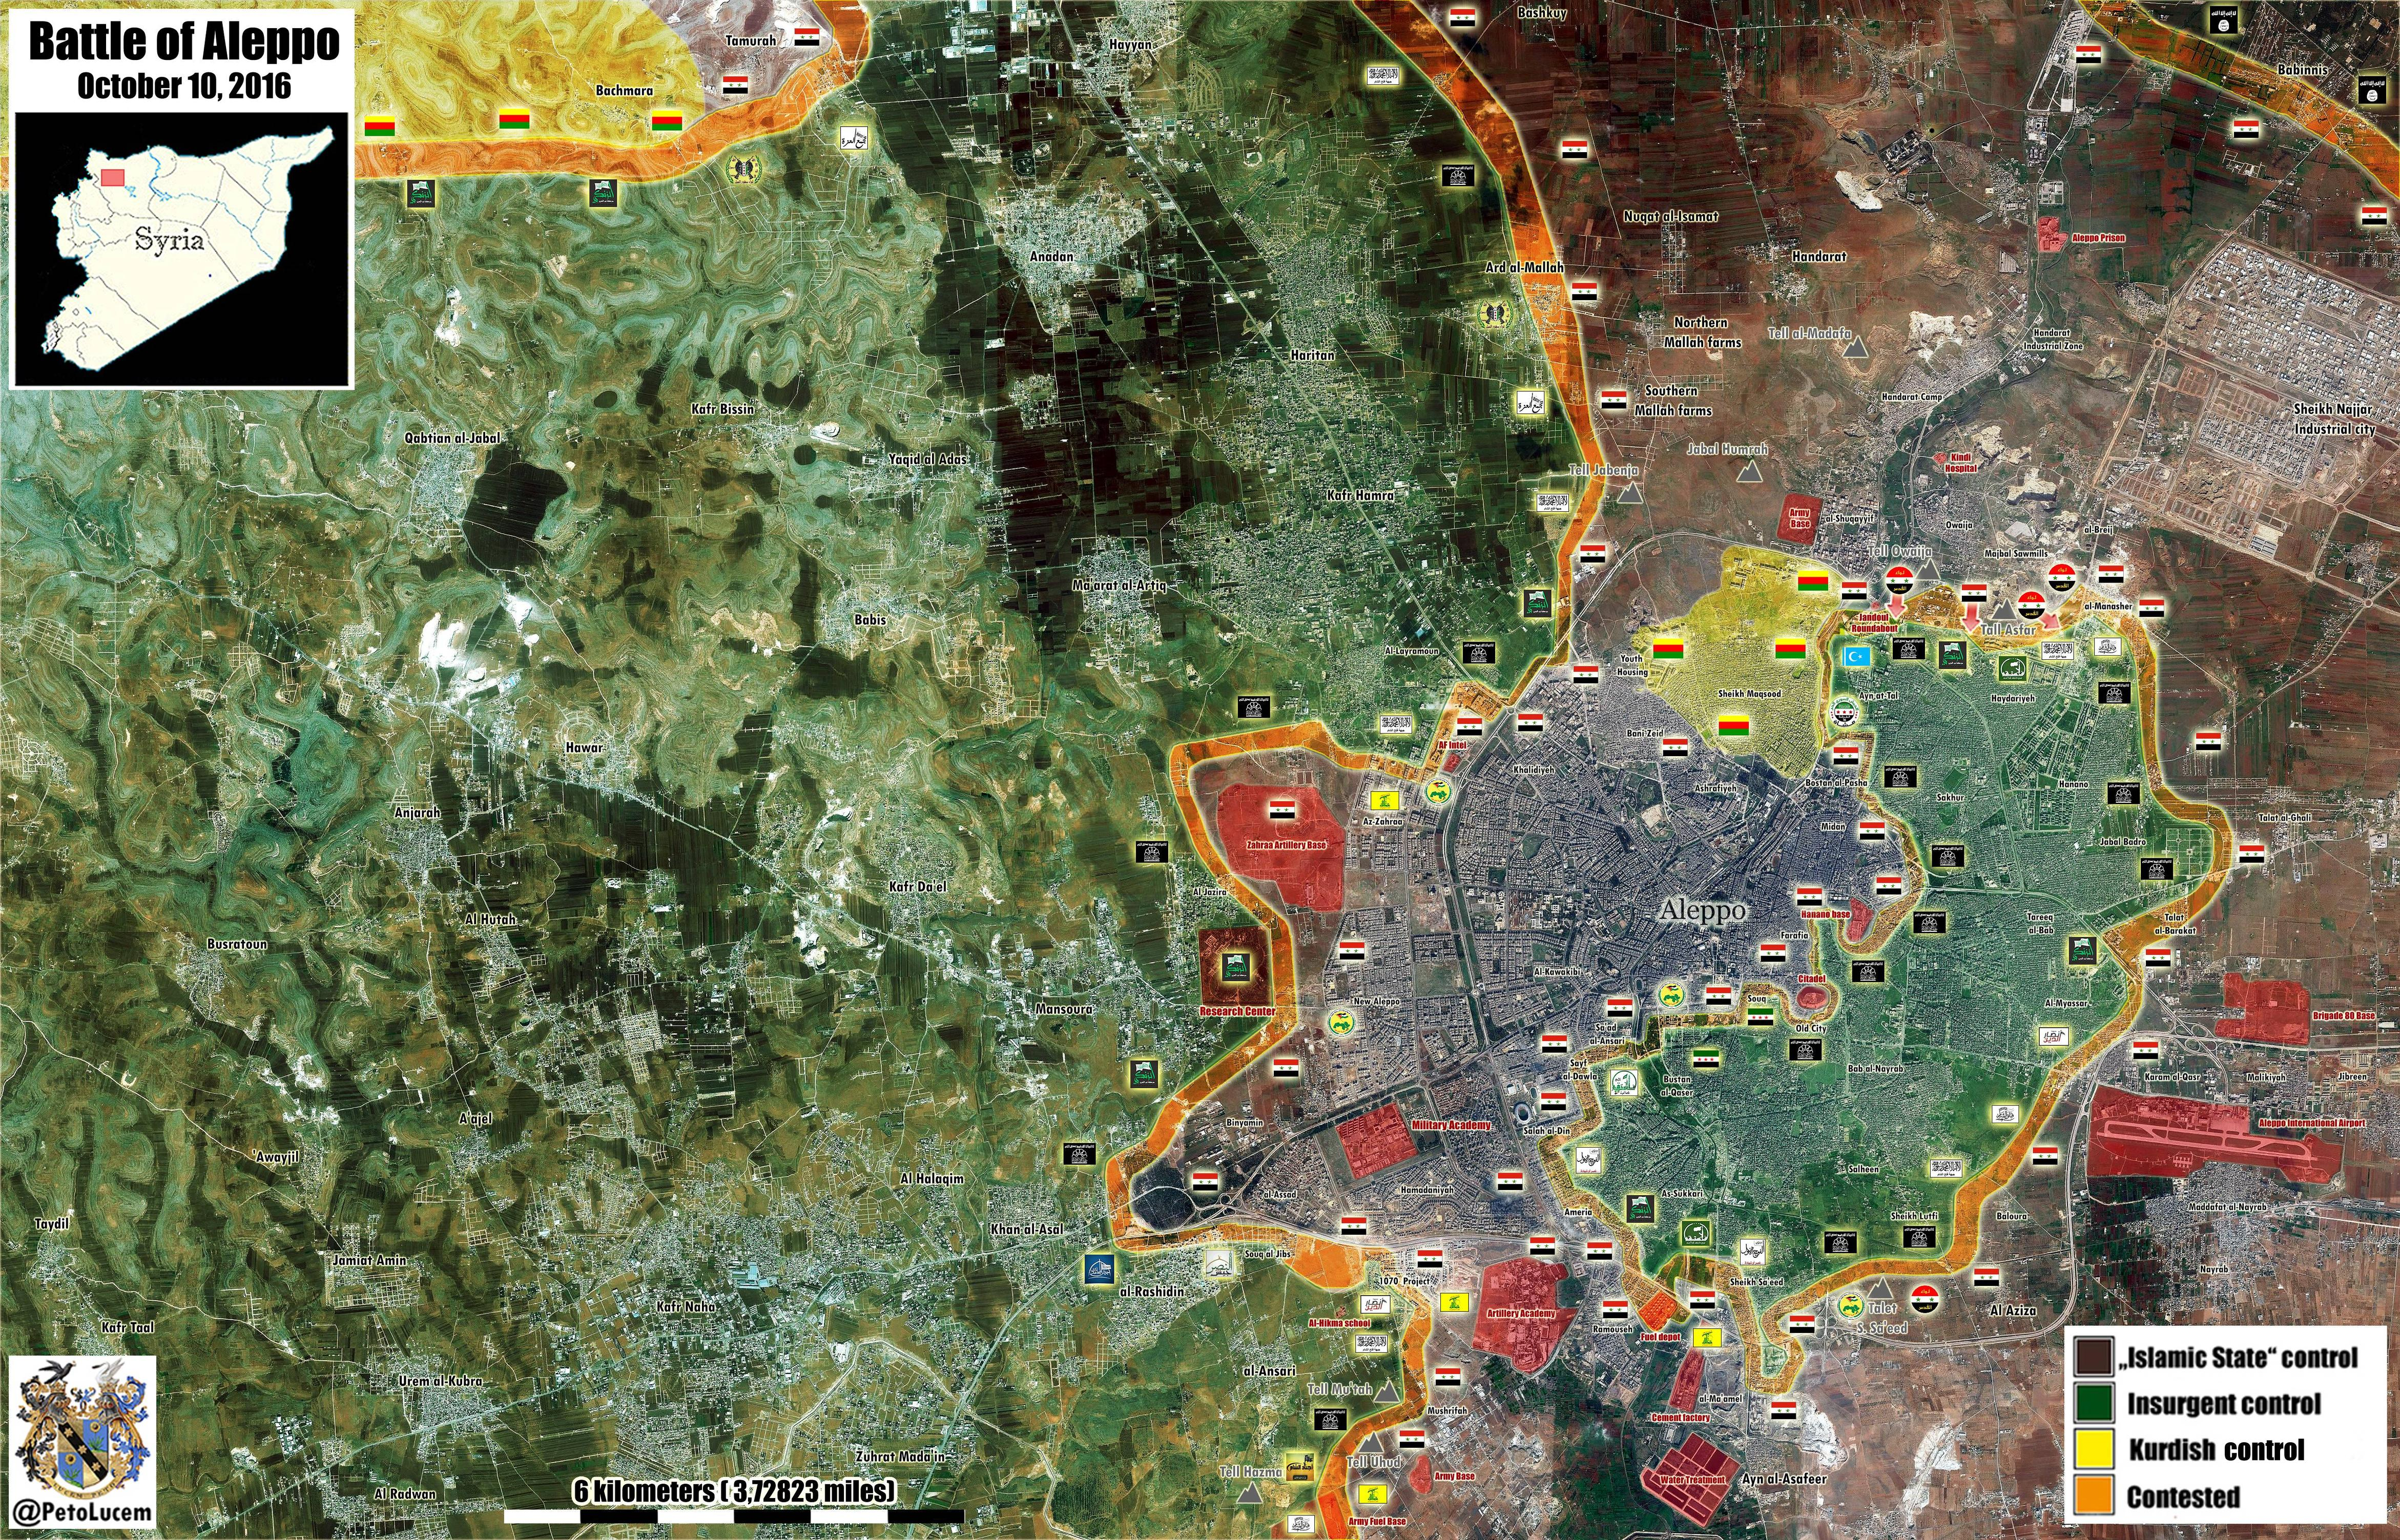 Overview of Military Situation in Aleppo City on October 13-14, 2016